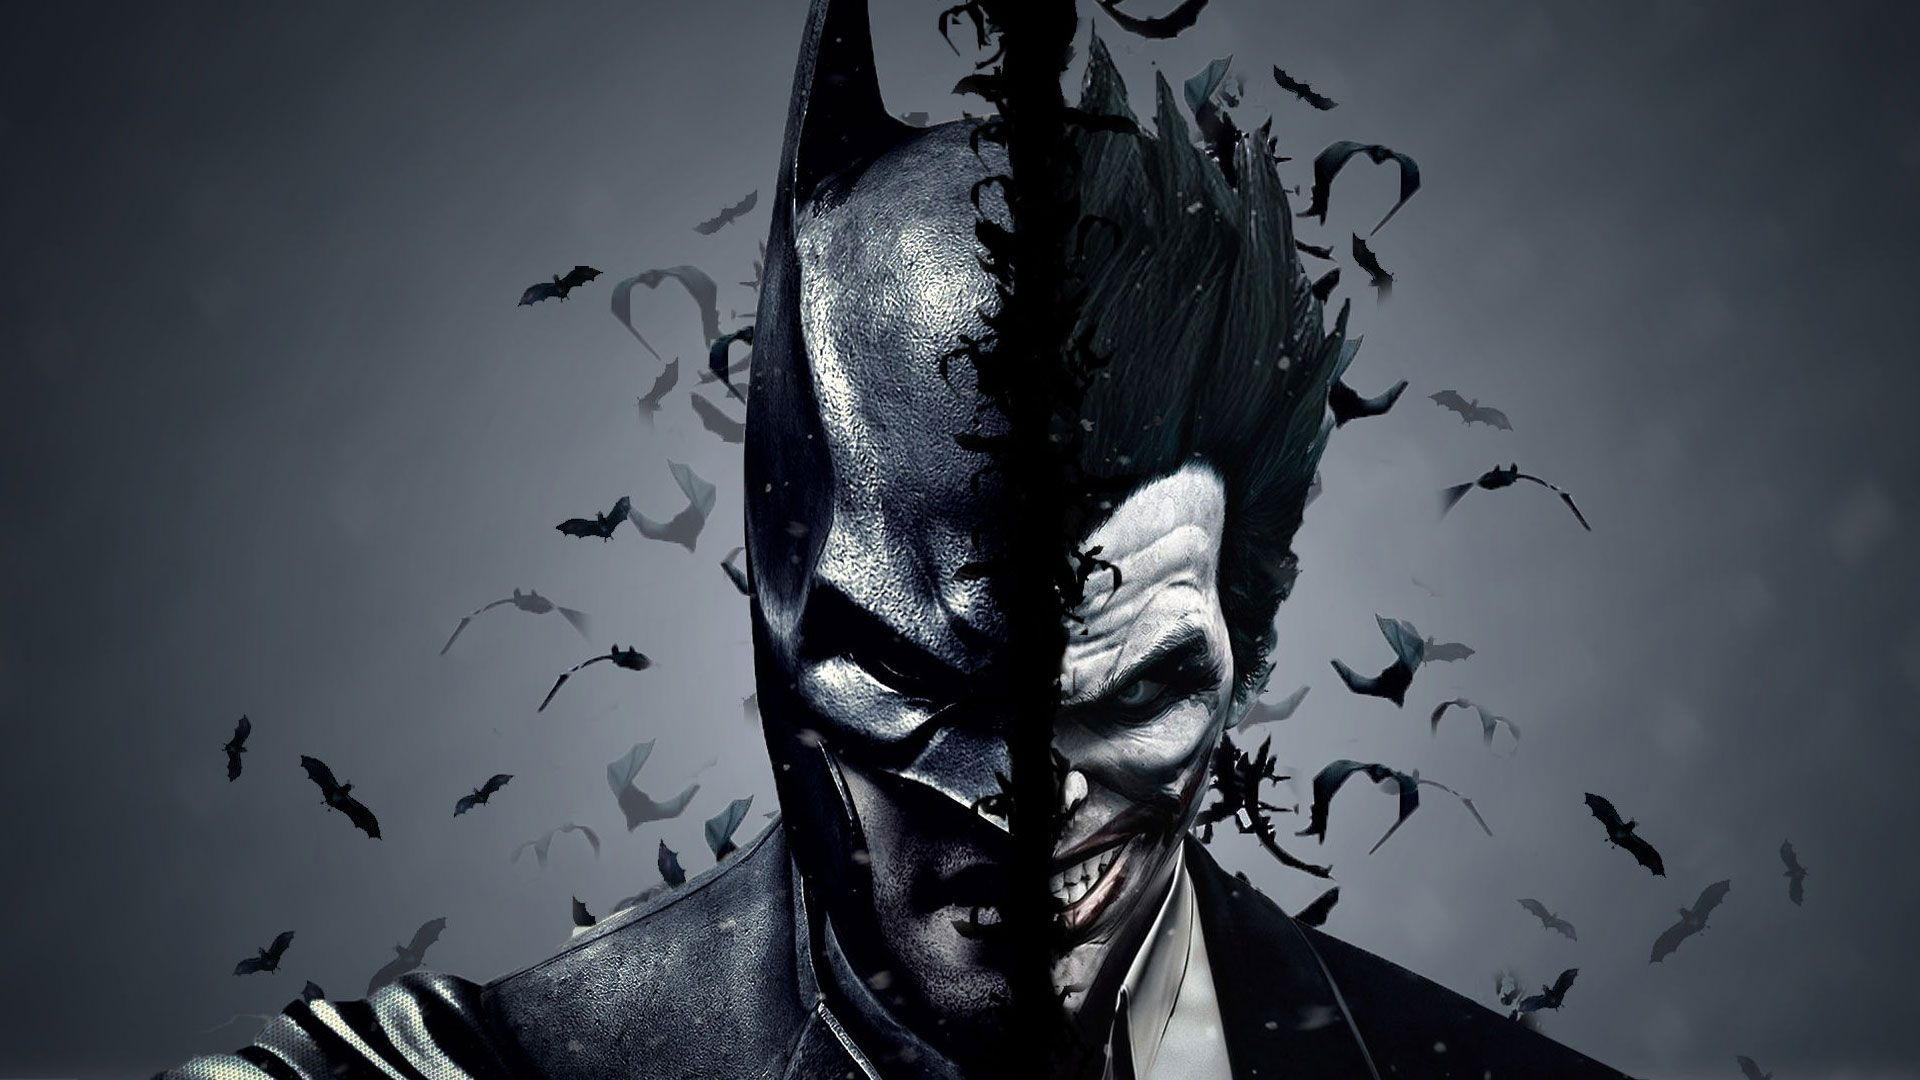 Batman In The Dark Knight Rises Wallpapers Hd Wallpapers